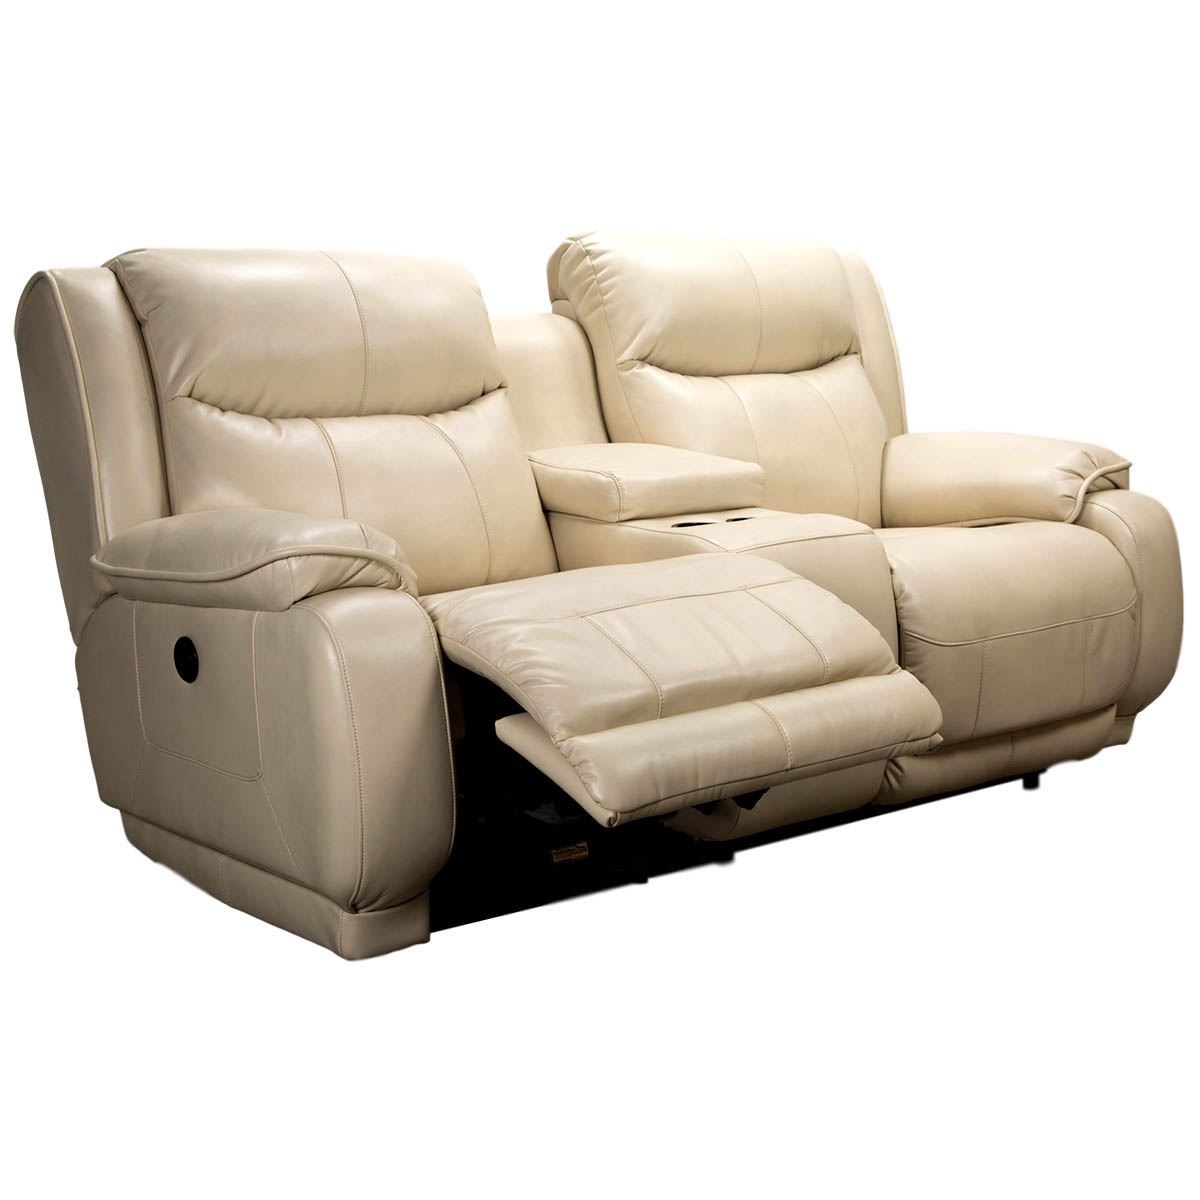 Velocity Power Reclining Loveseat With Console Lifestyle